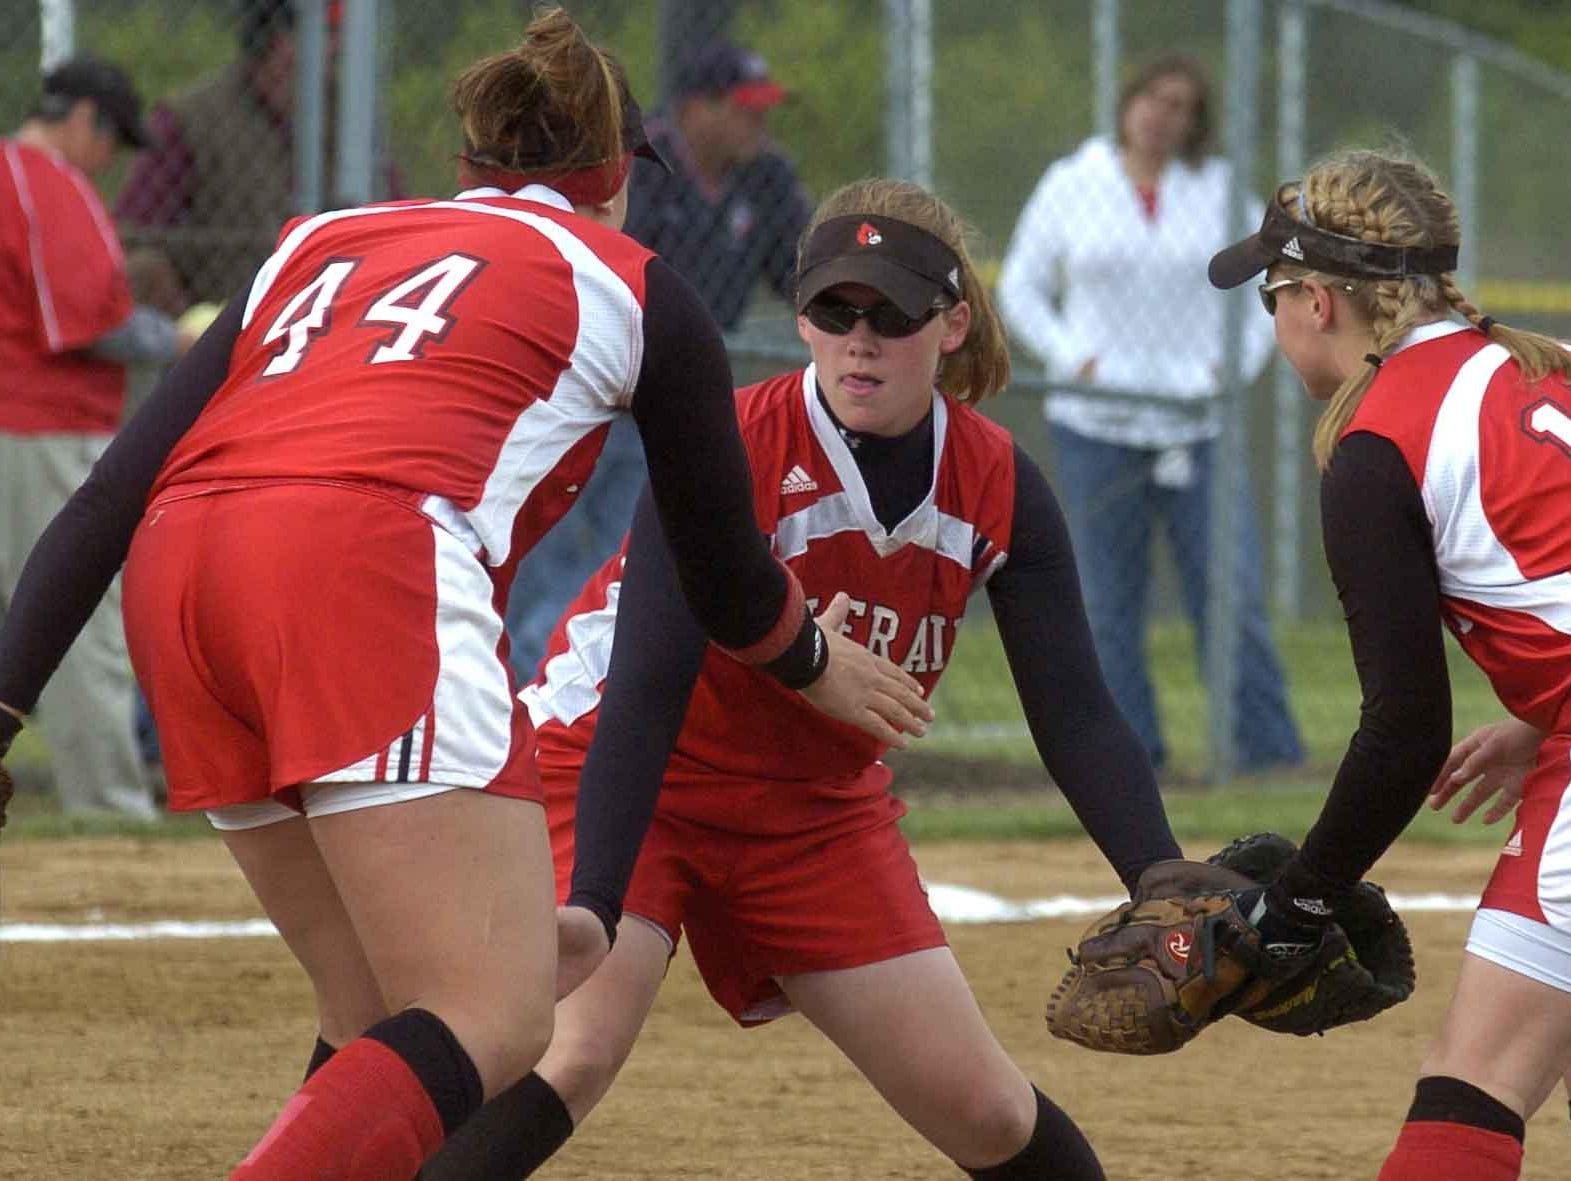 From left, Colerain's Jenna Suttles (44), pitcher Emily Schwaeble (10) and Andrea Amrein (17) celebrates after getting the second out in the 7th inning at Lakota East softball field in 2007.